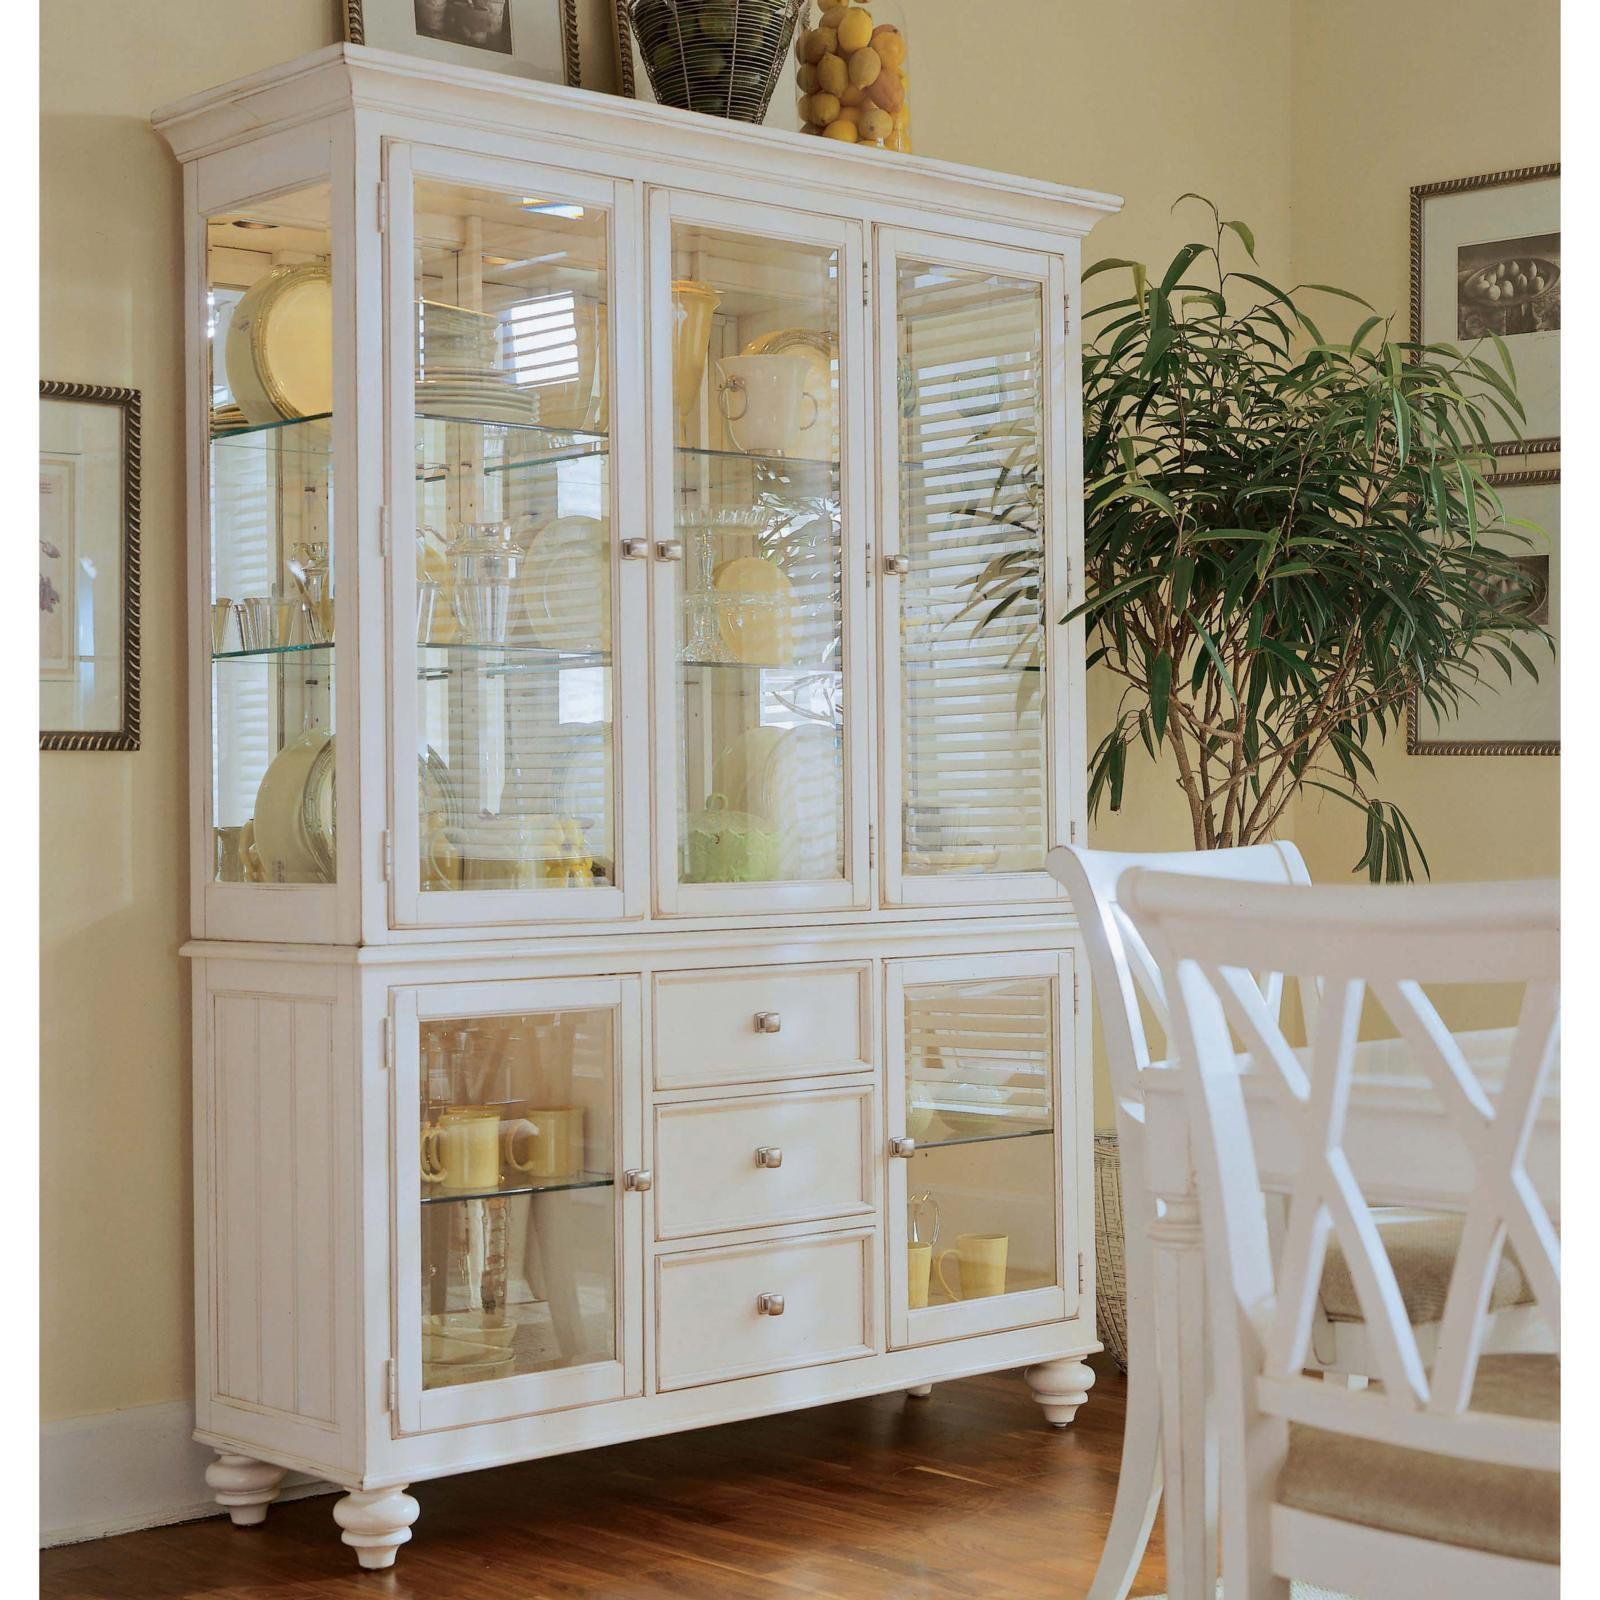 Ikea Dining Room Storage Search Results White China Cabinets Contemporary China Cabinets Home